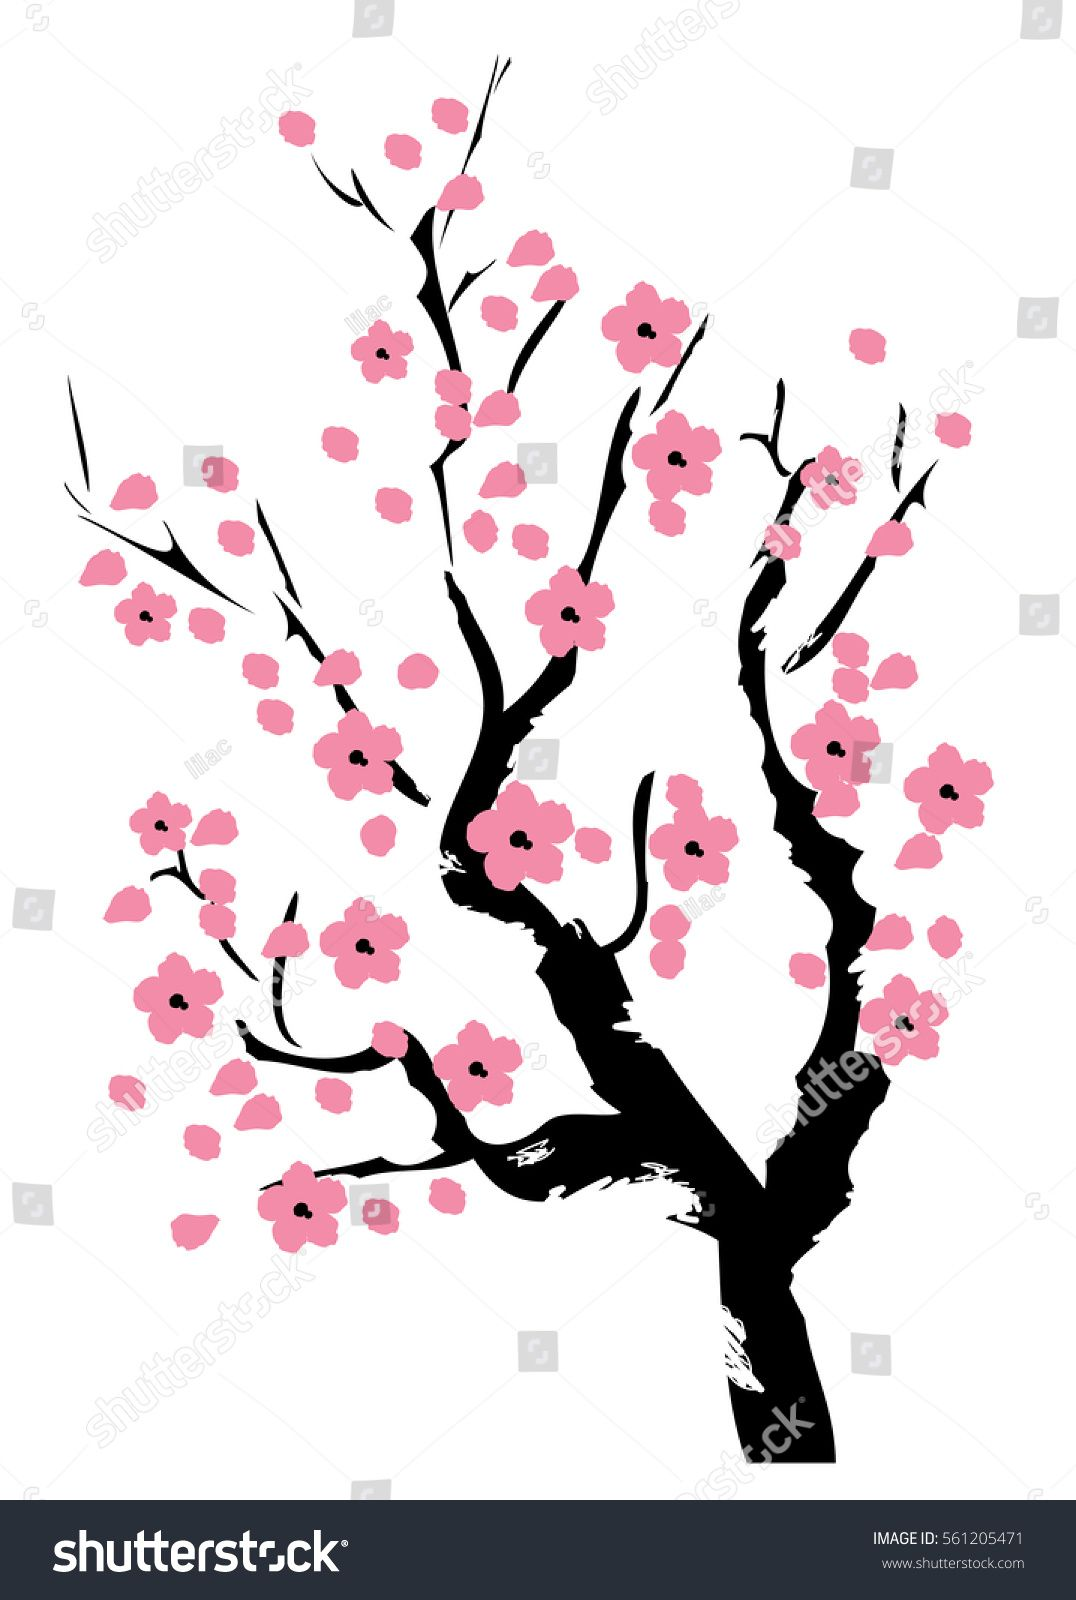 vector illustration of cherry blossom tree templates pinterest